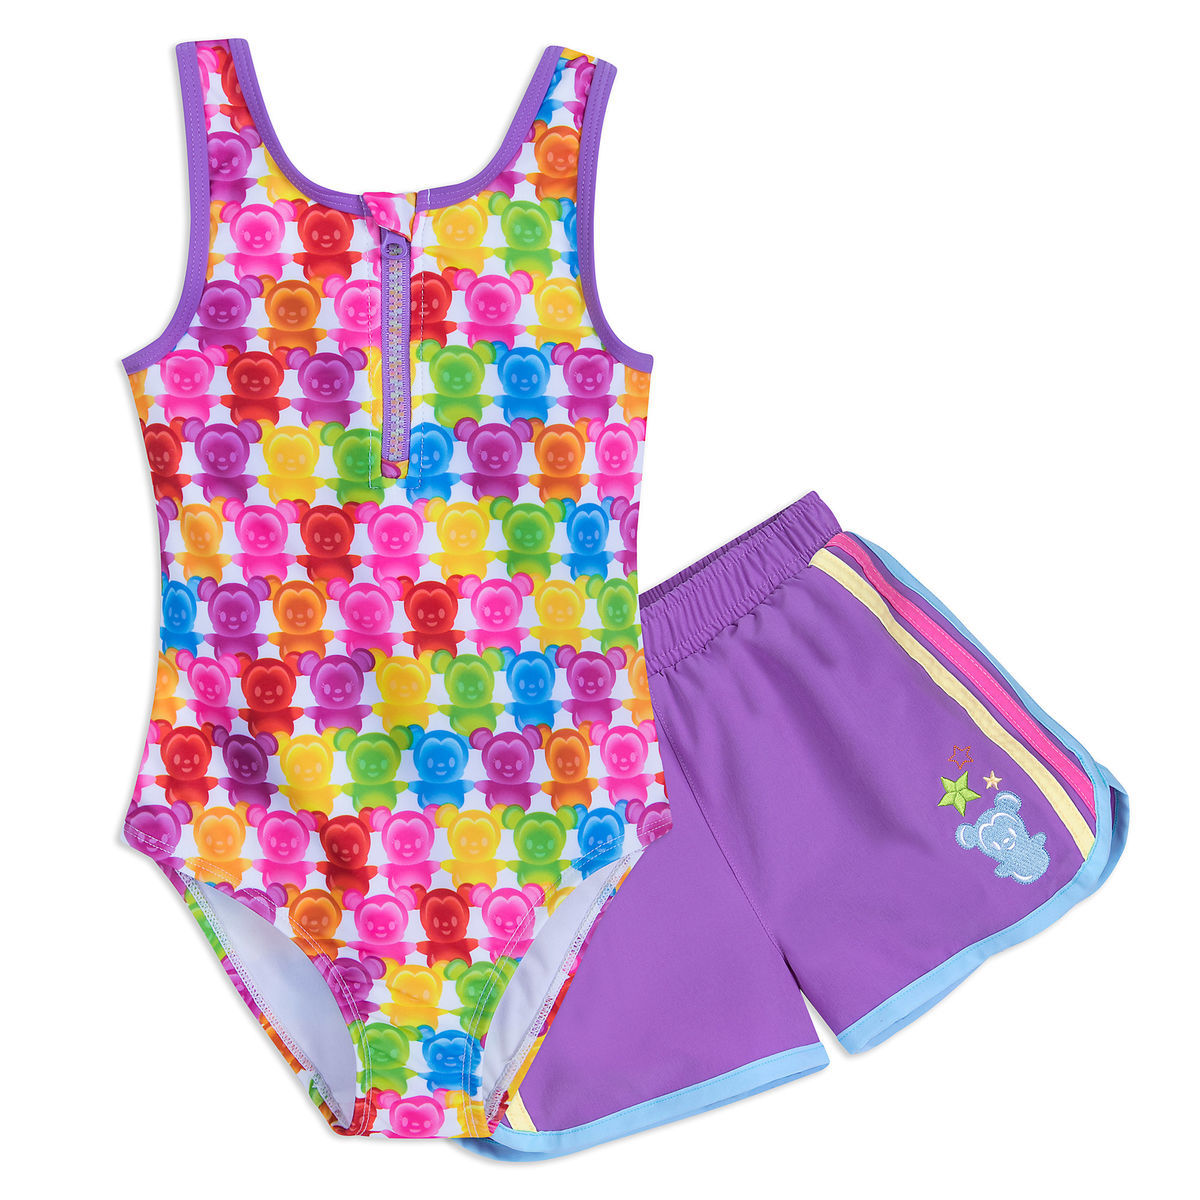 a22b42a485 Product Image of Mickey and Minnie Mouse Swimsuit and Shorts Set for Girls    1